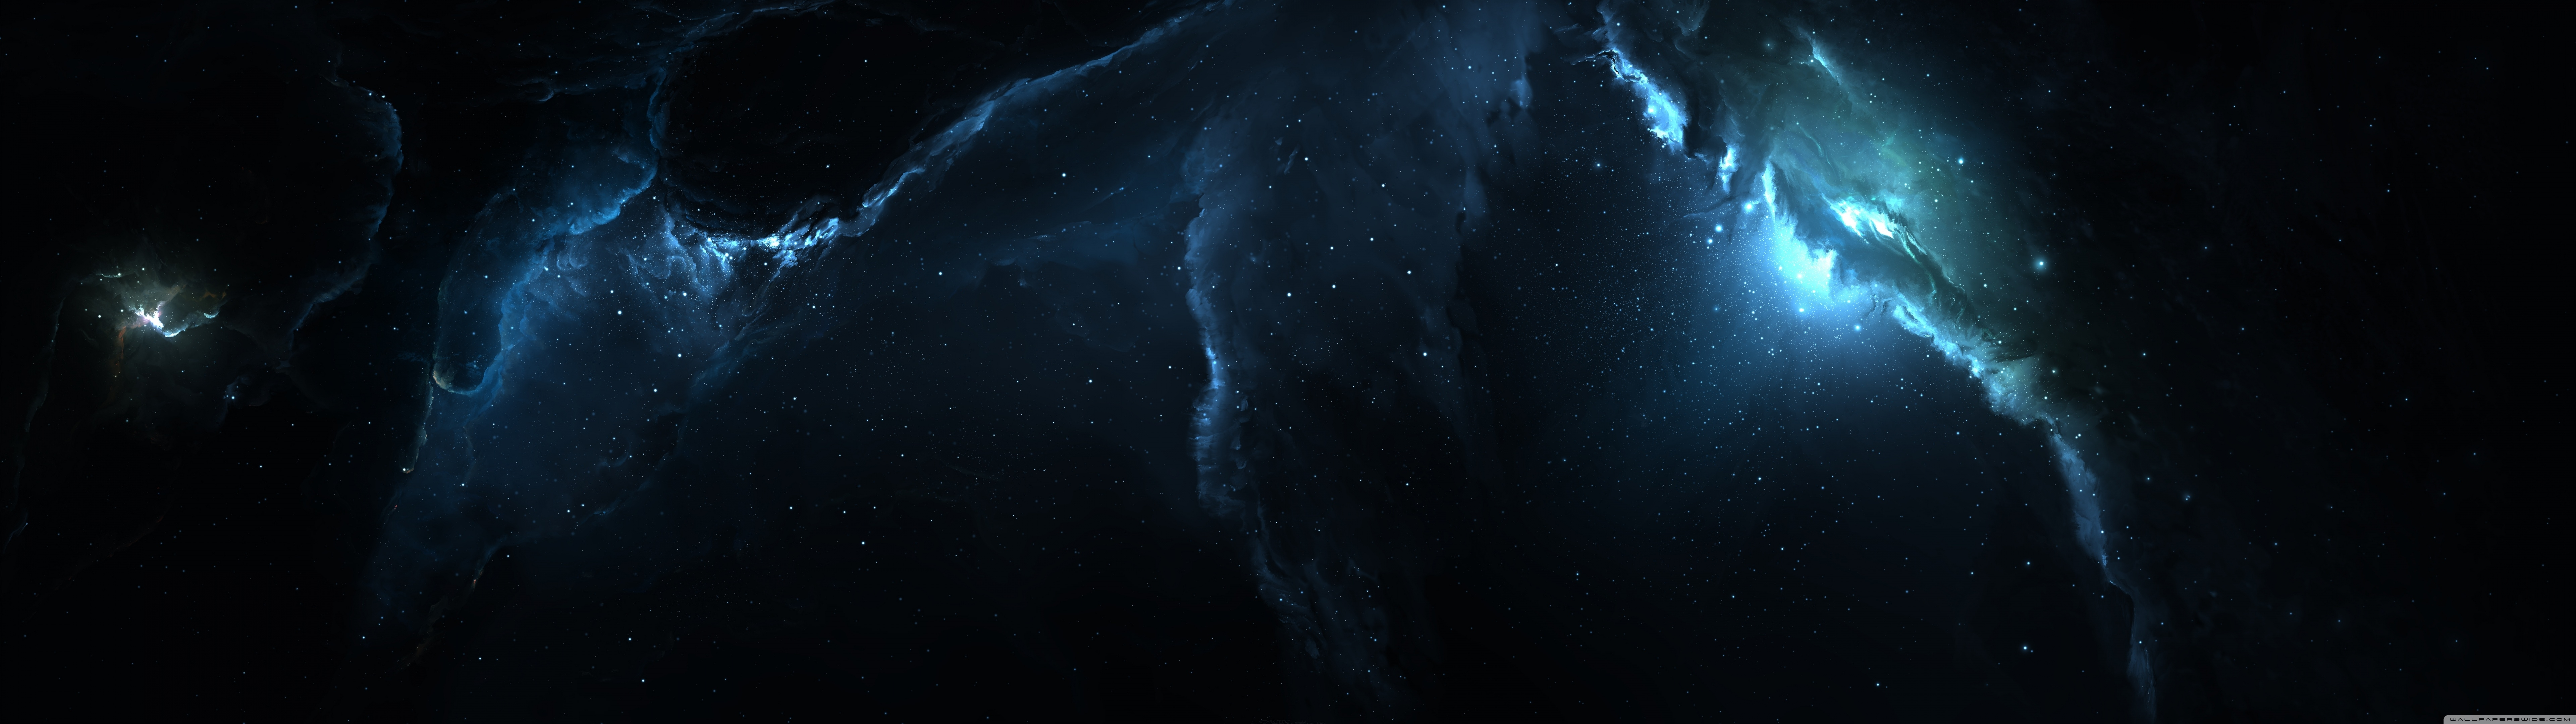 looking for more 7680 x 1440 wallpapers. these, i have and will